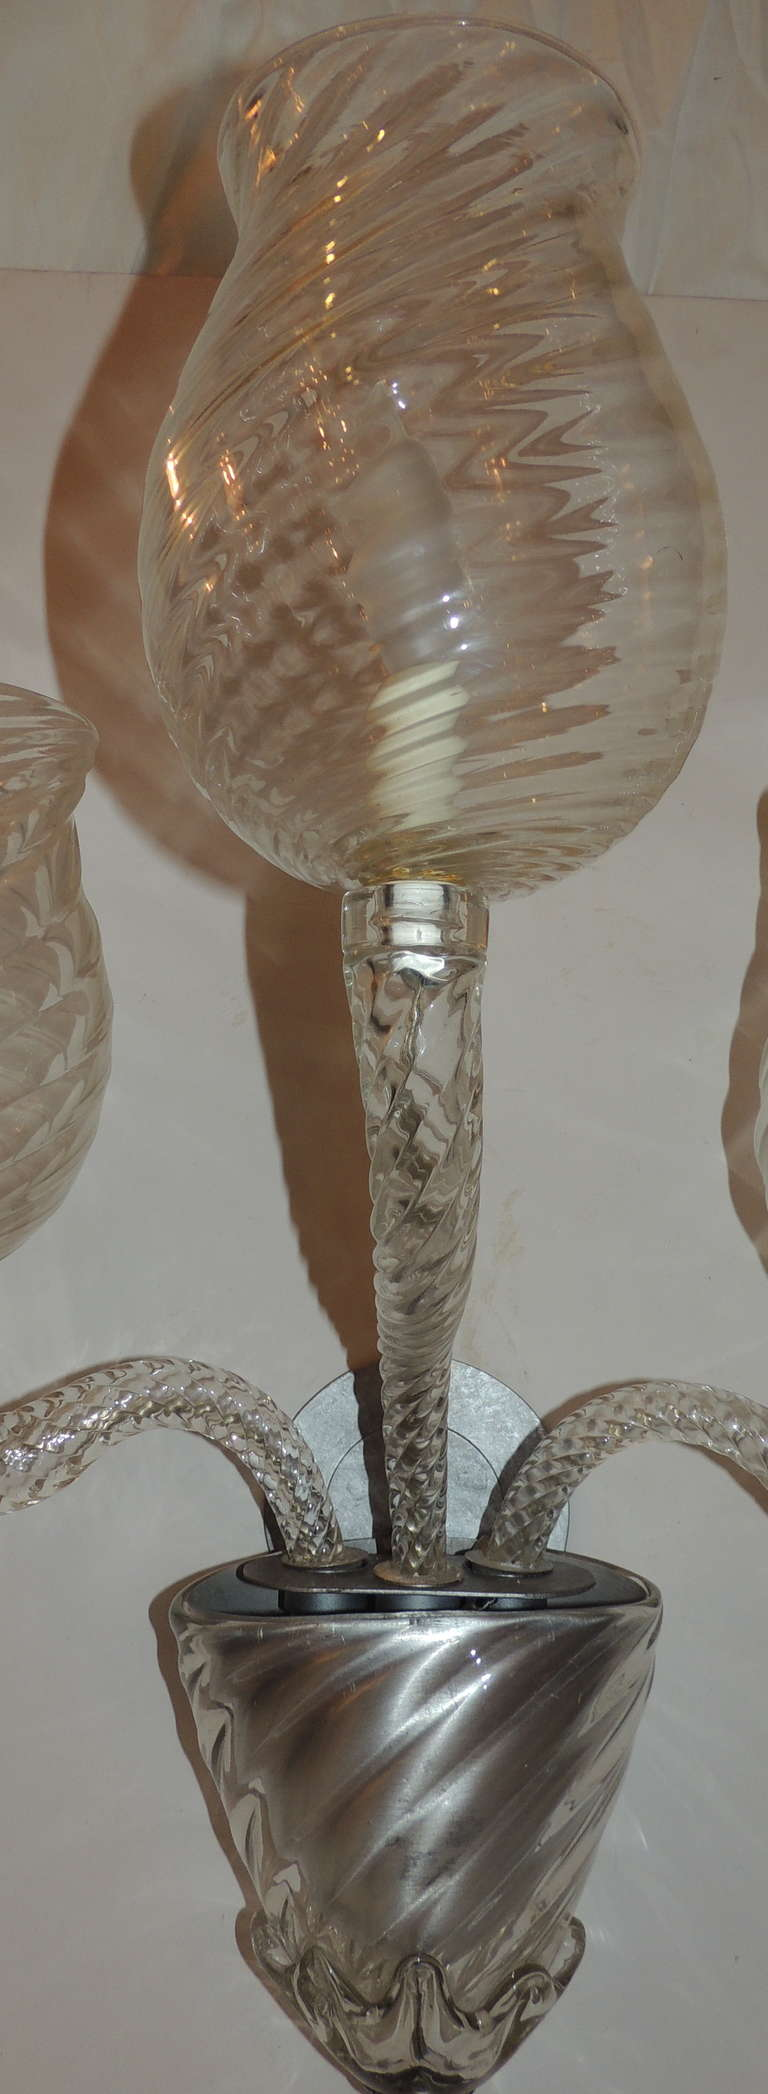 Midcentury Vintage Murano Art Glass Modern Transitional Large Wall Sconces, Pair For Sale 3